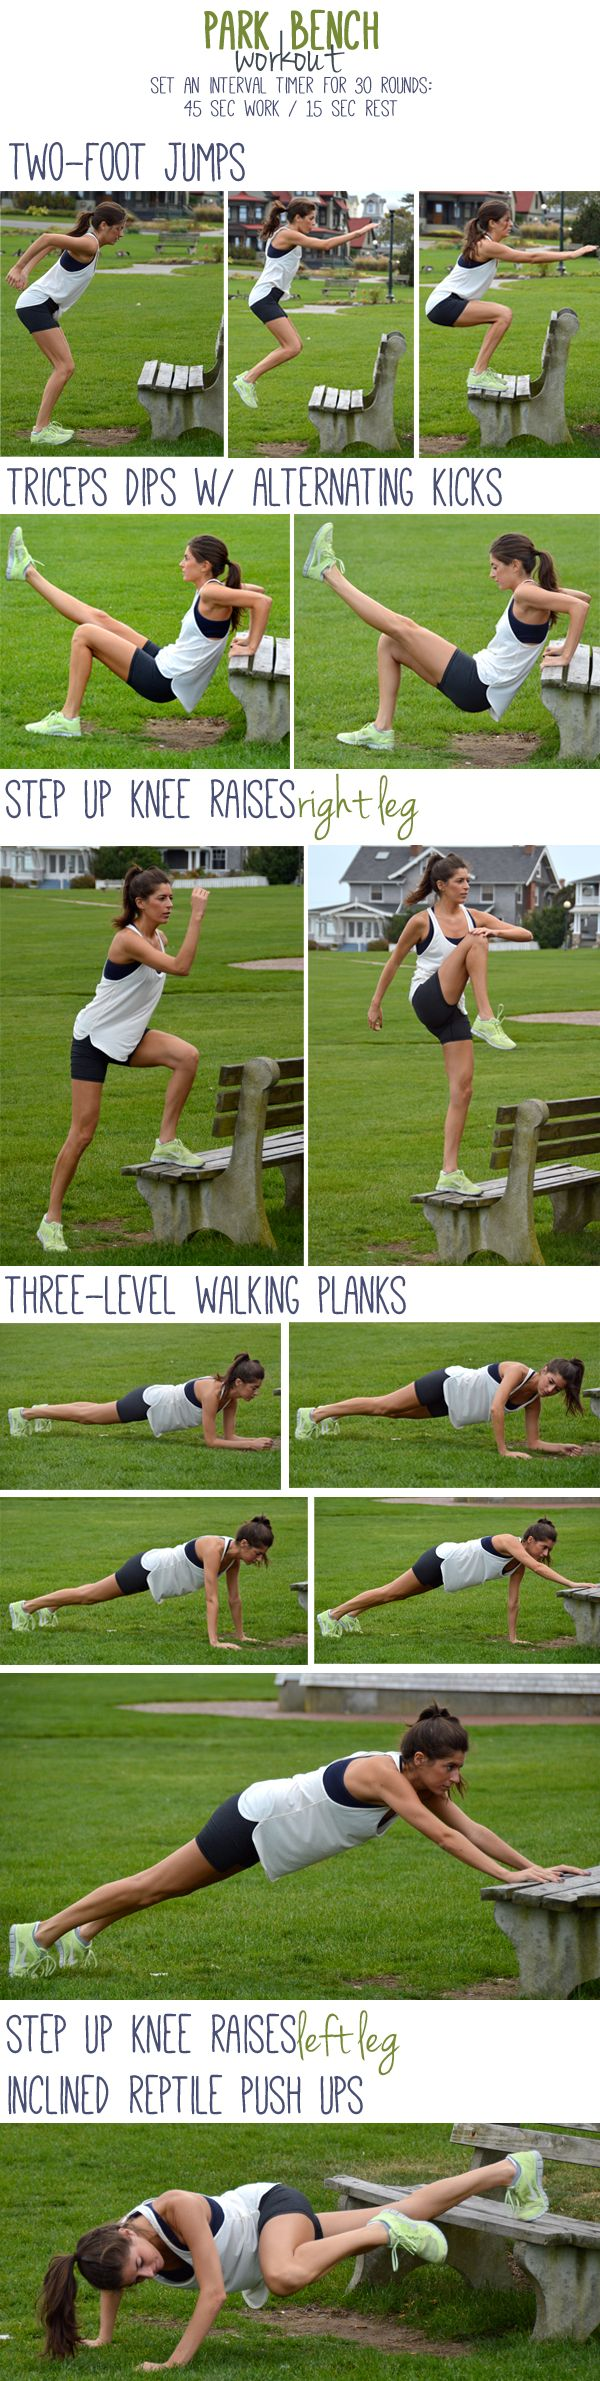 Park Bench Workout--30 minutes of bench exercises.